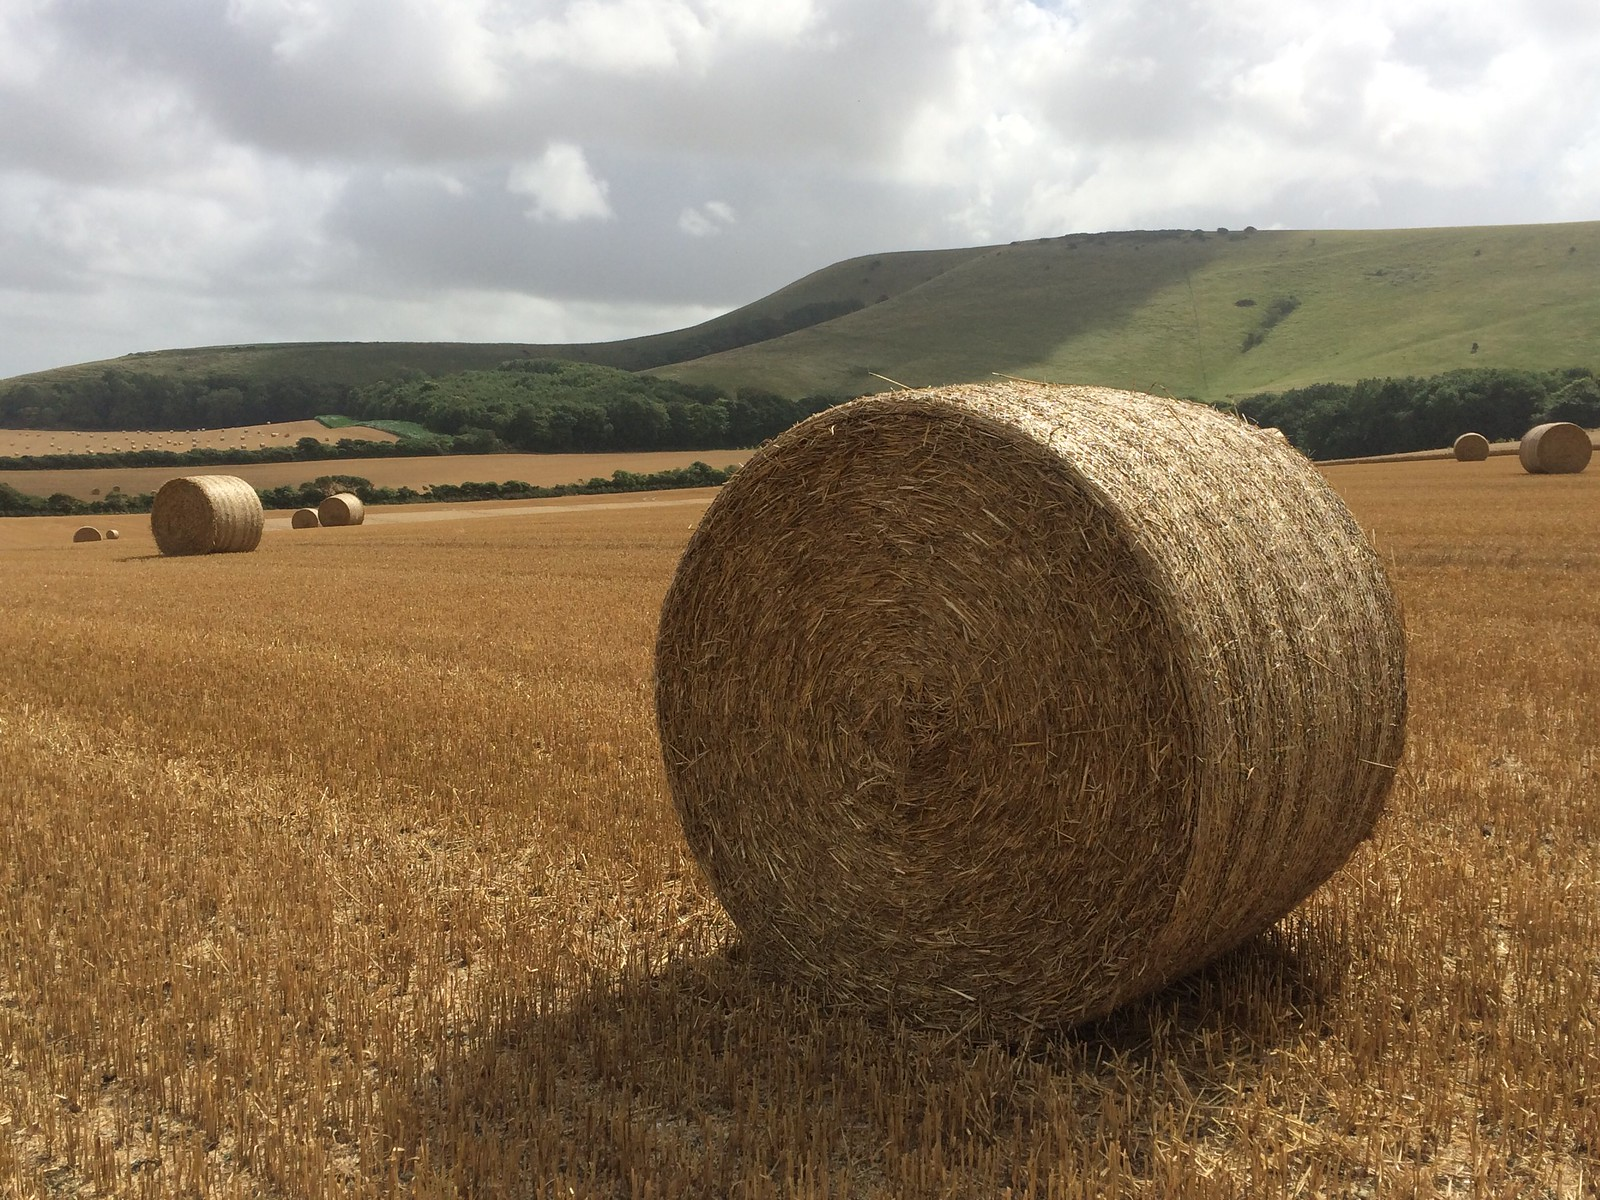 August 20, 2016: Glynde to Seaford South Downs hay bales